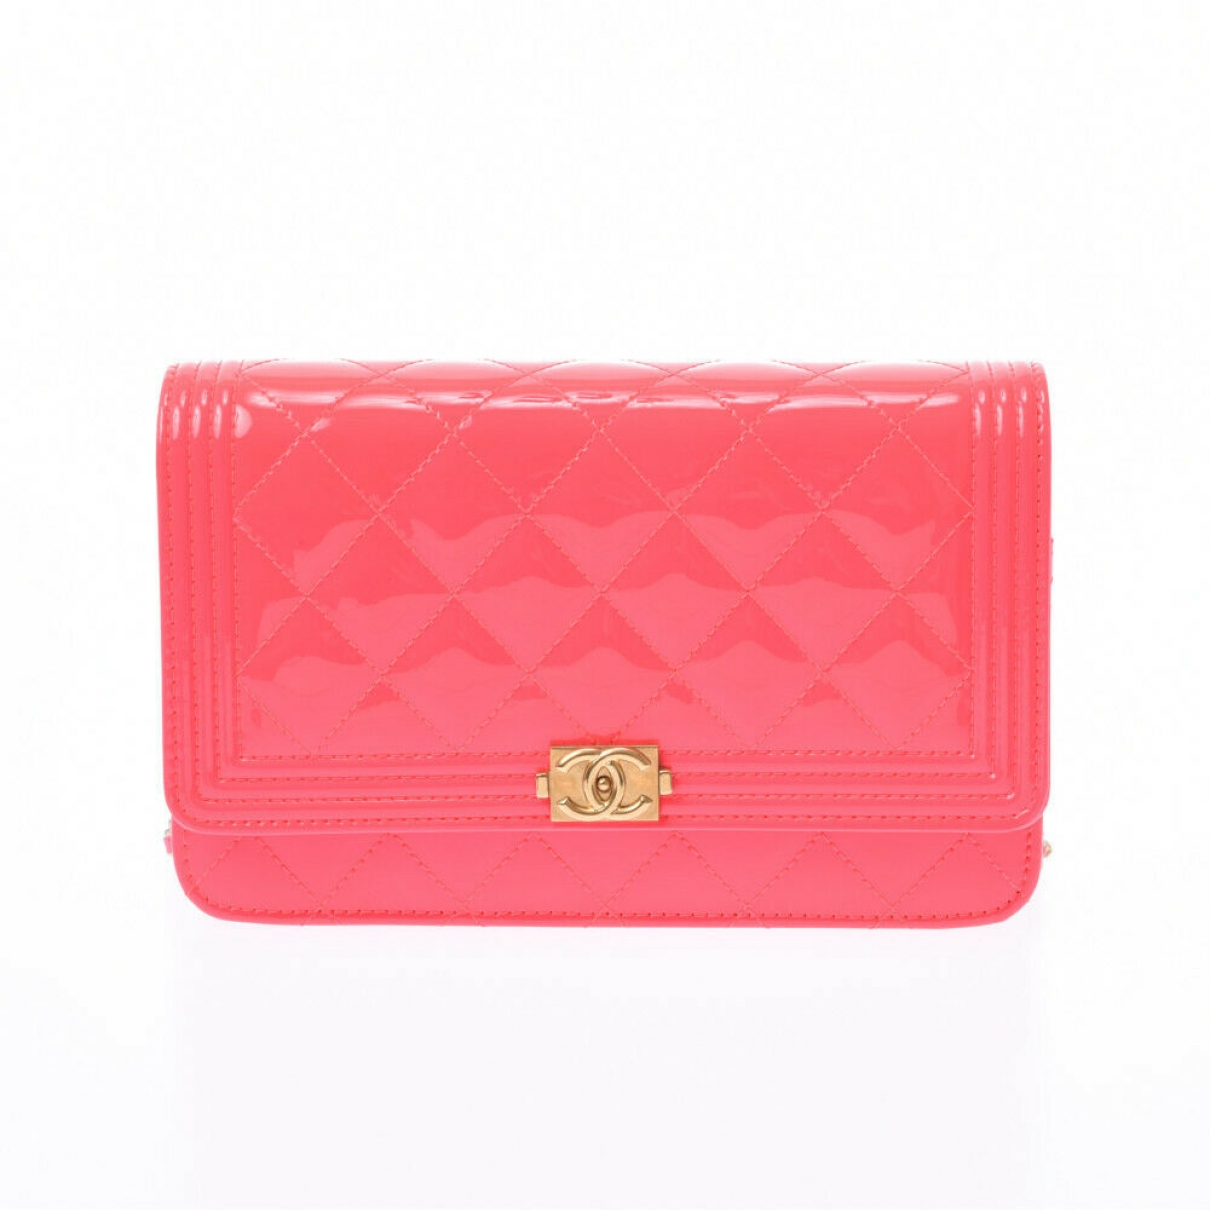 Chanel Boy Pink Patent leather Clutch bag for Women \N